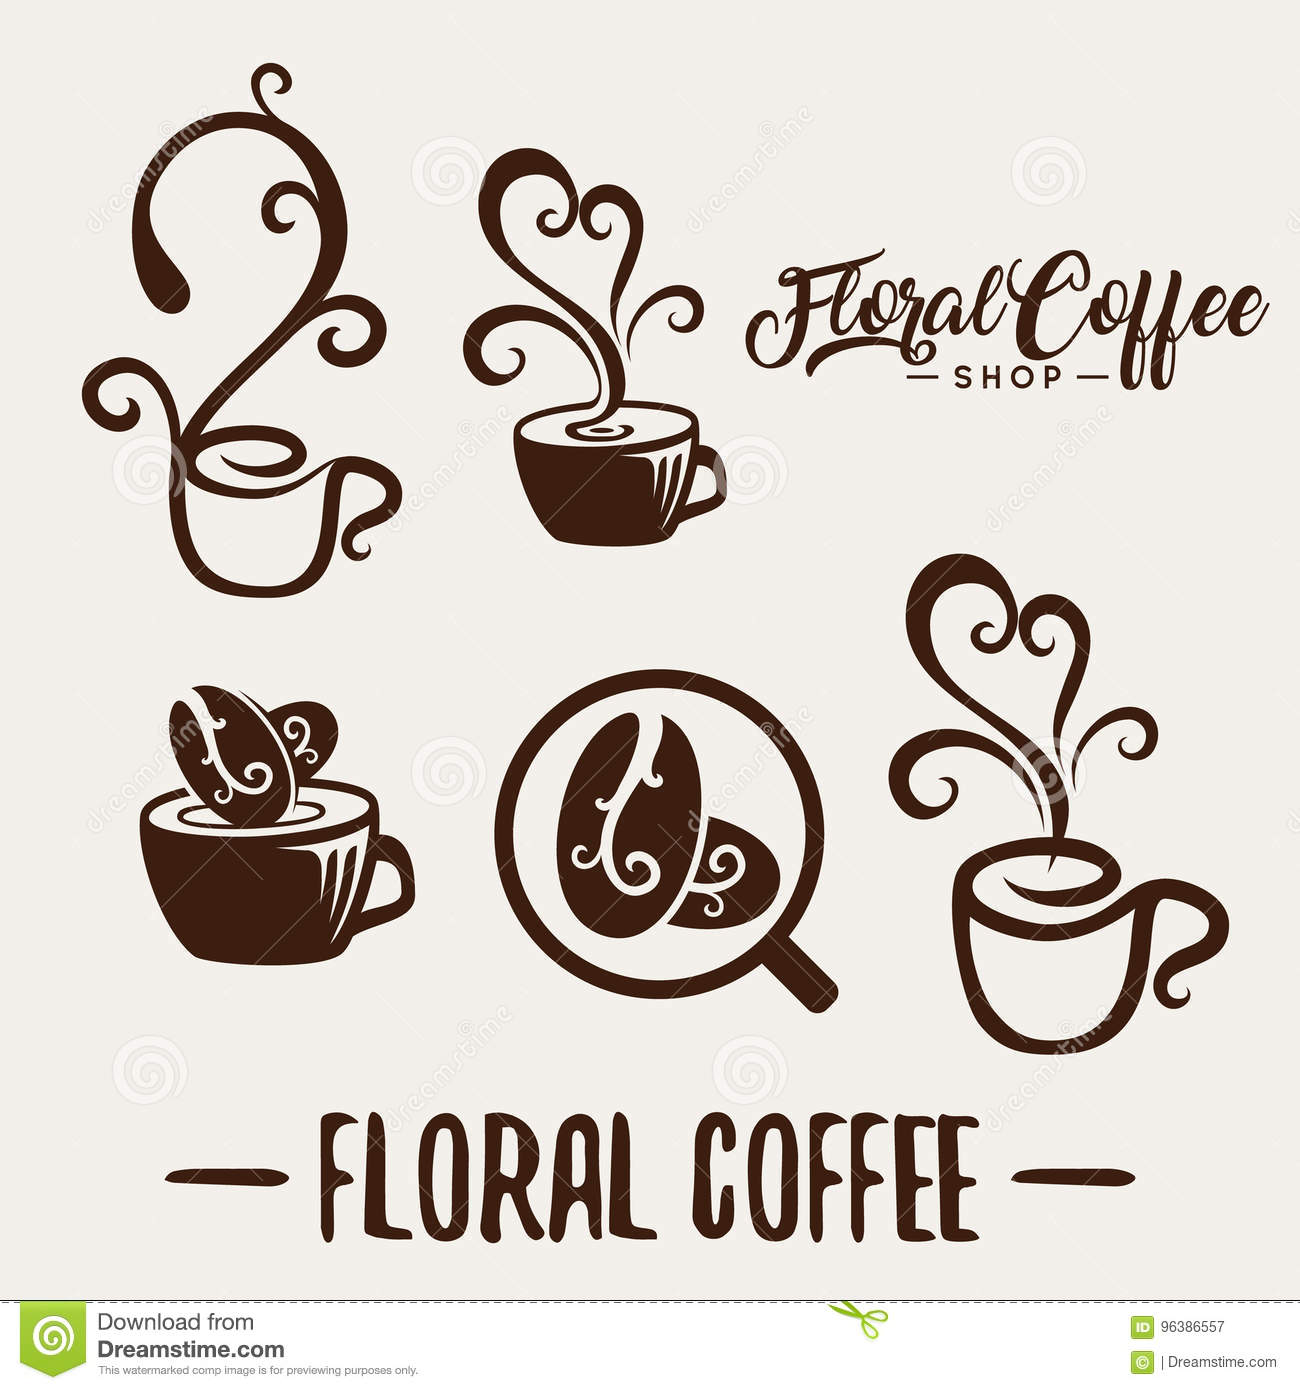 Floral Coffee Shop Logo Template Natural Abstract Coffee Cup Stock Vector Illustration Of Identity Curve 96386557